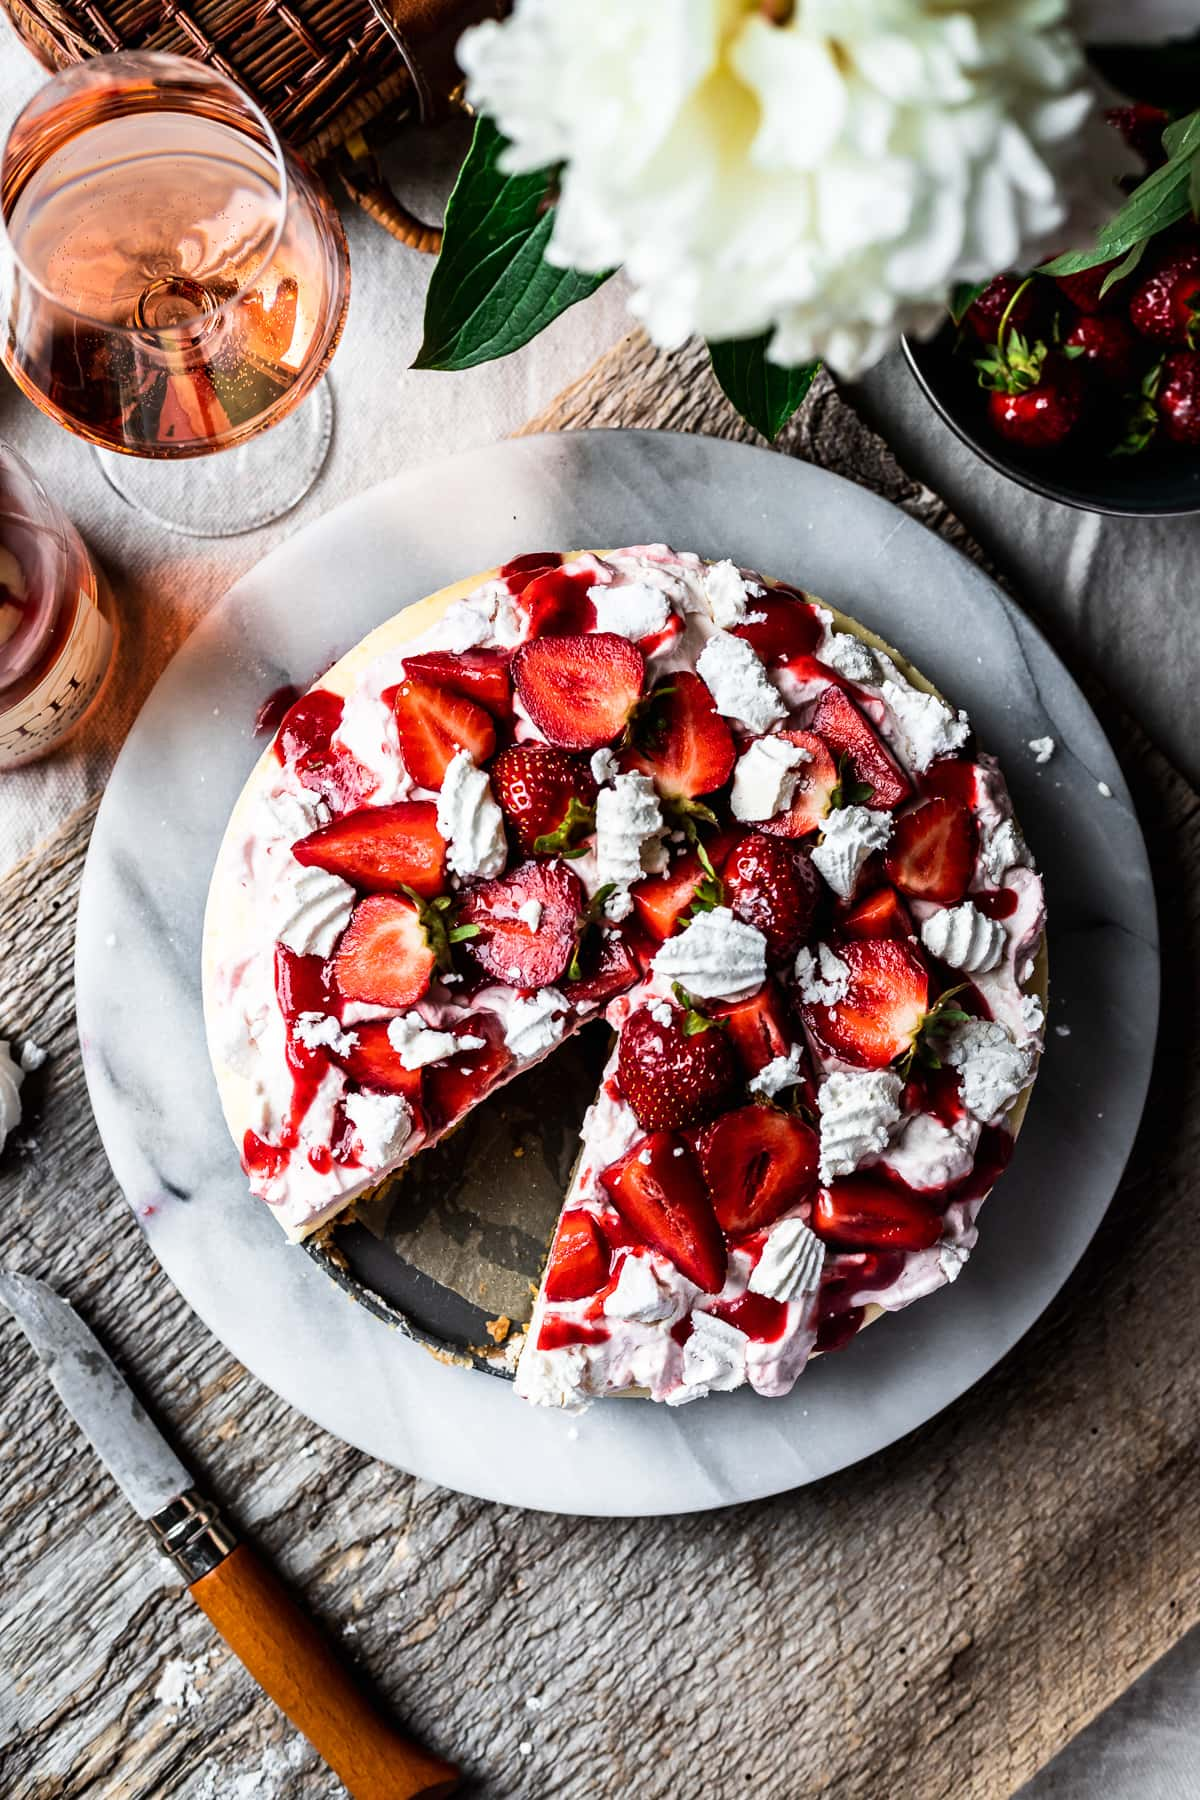 Top view of strawberry topped cheesecake with a slice missing. A rustic wooden board serves as a background. A glass of rosé wine sits nearby.